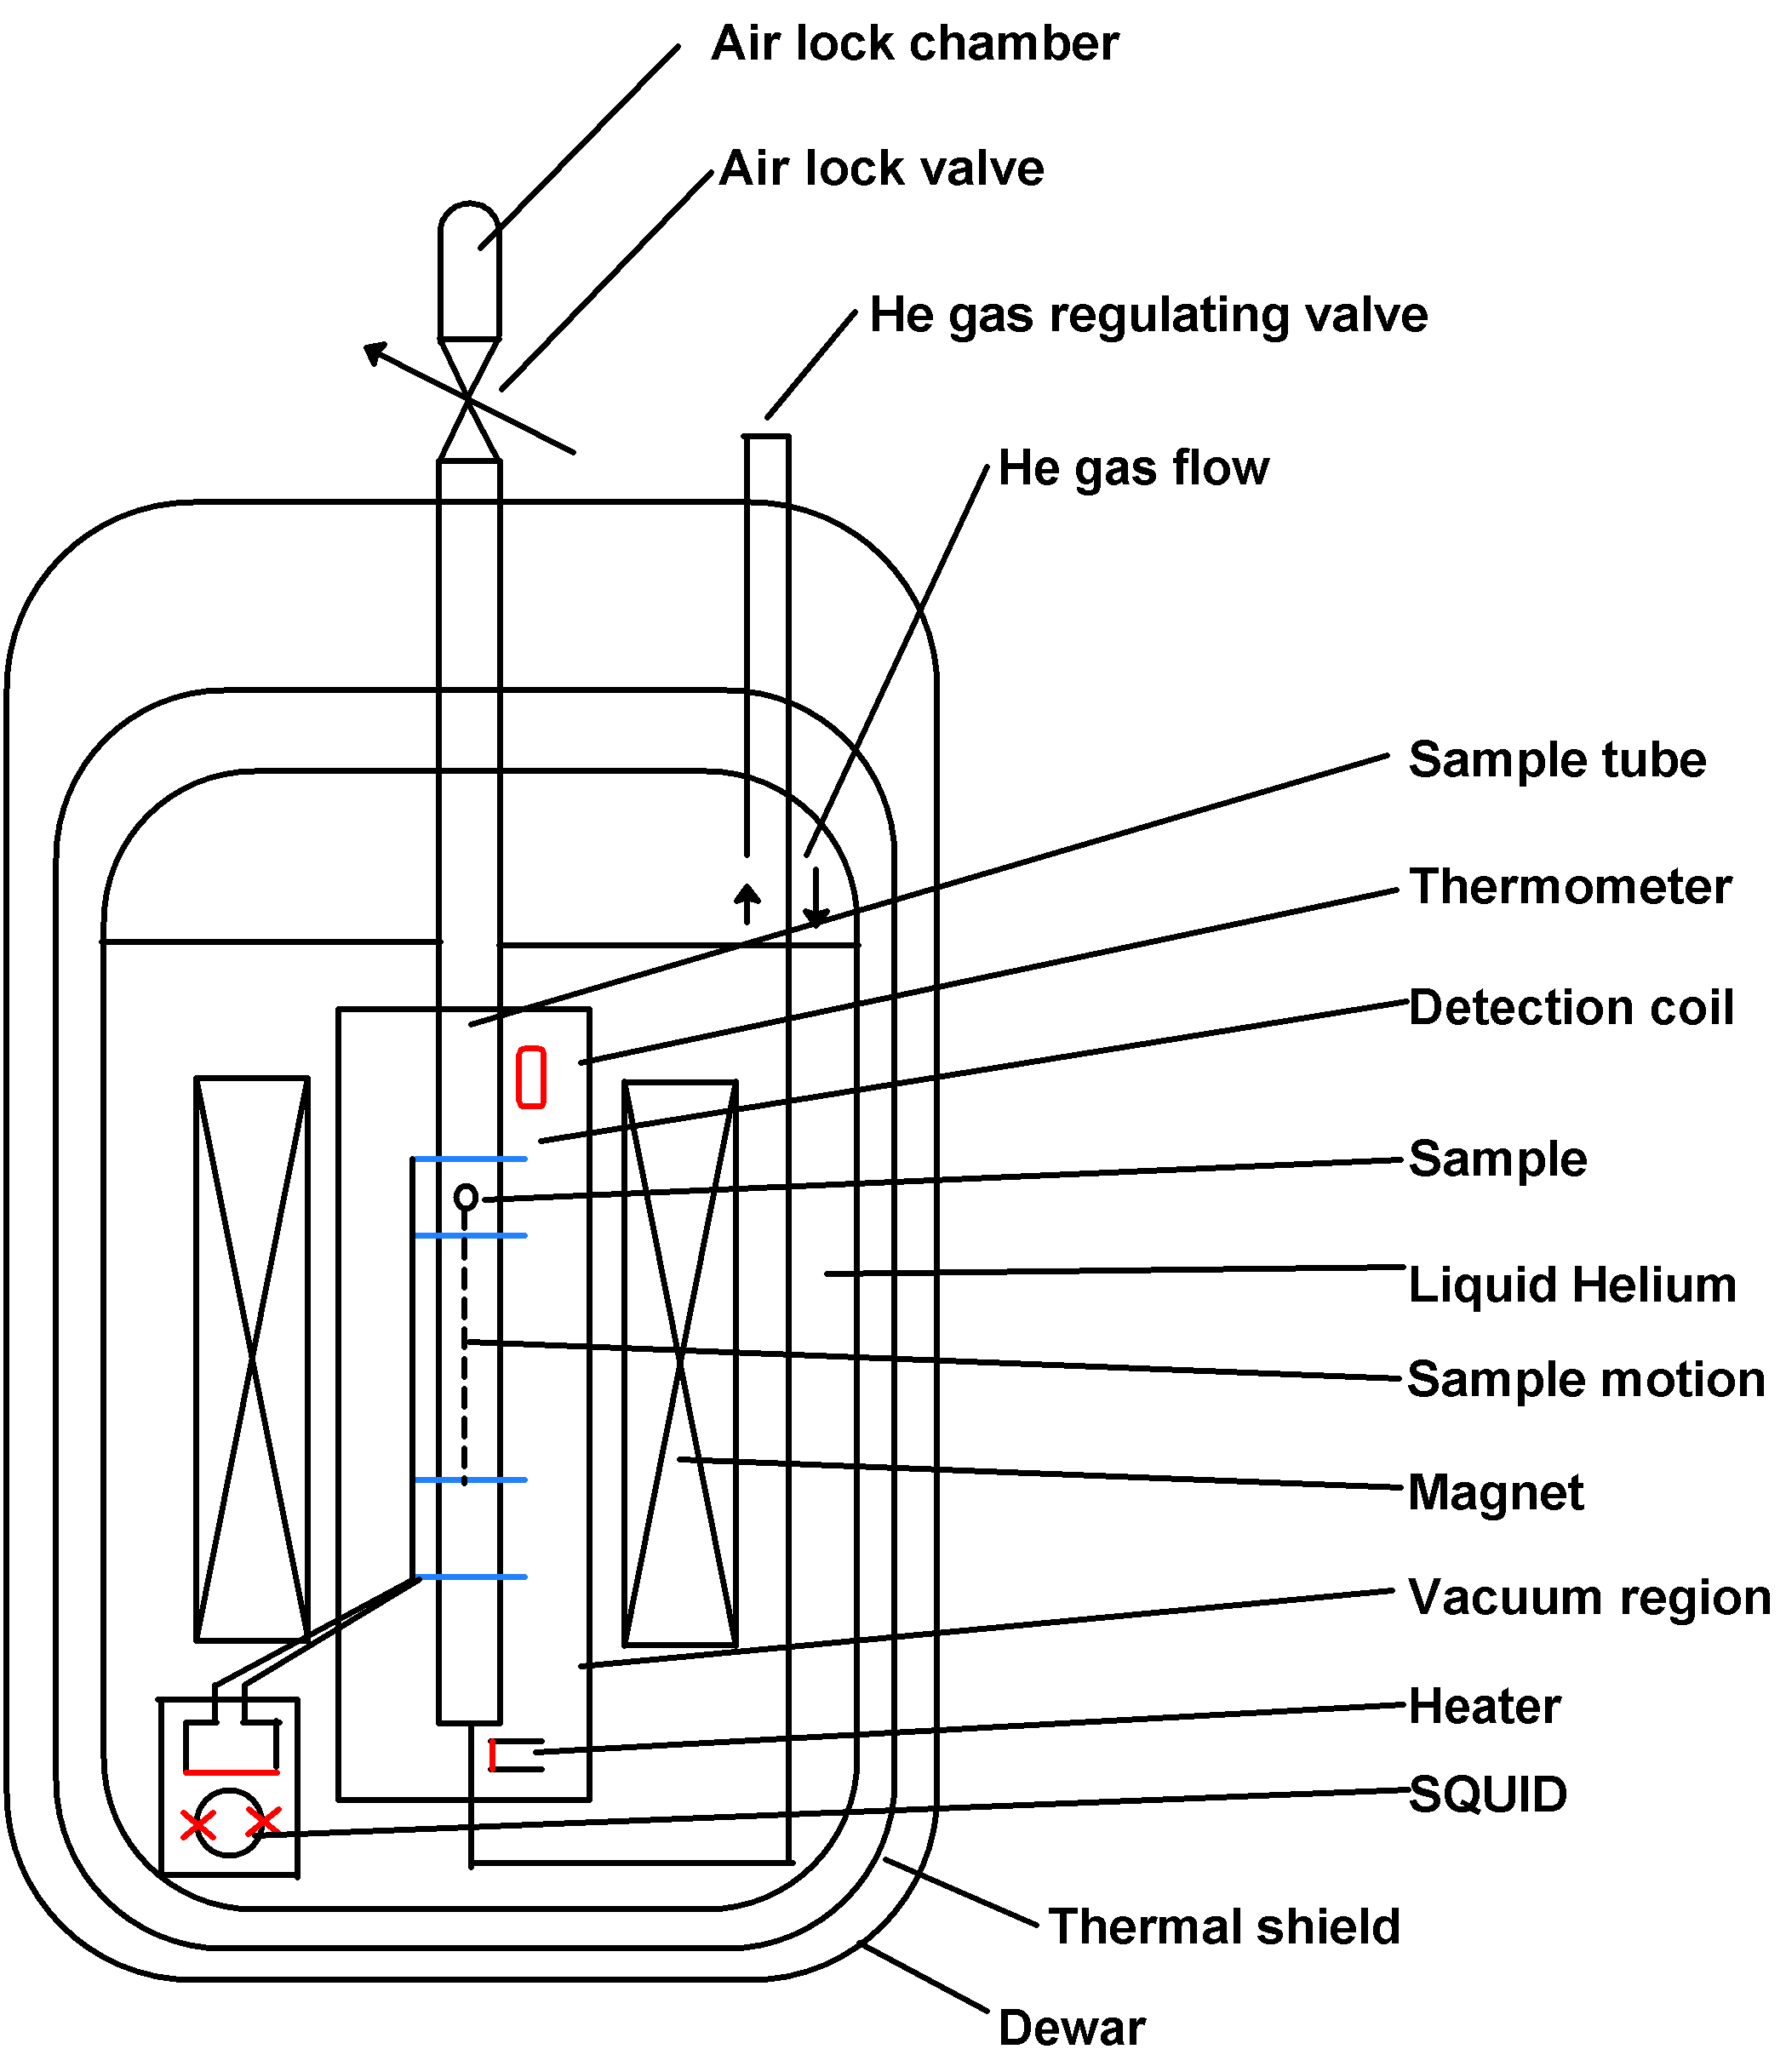 Calibration, Practical guide to using a superconducting